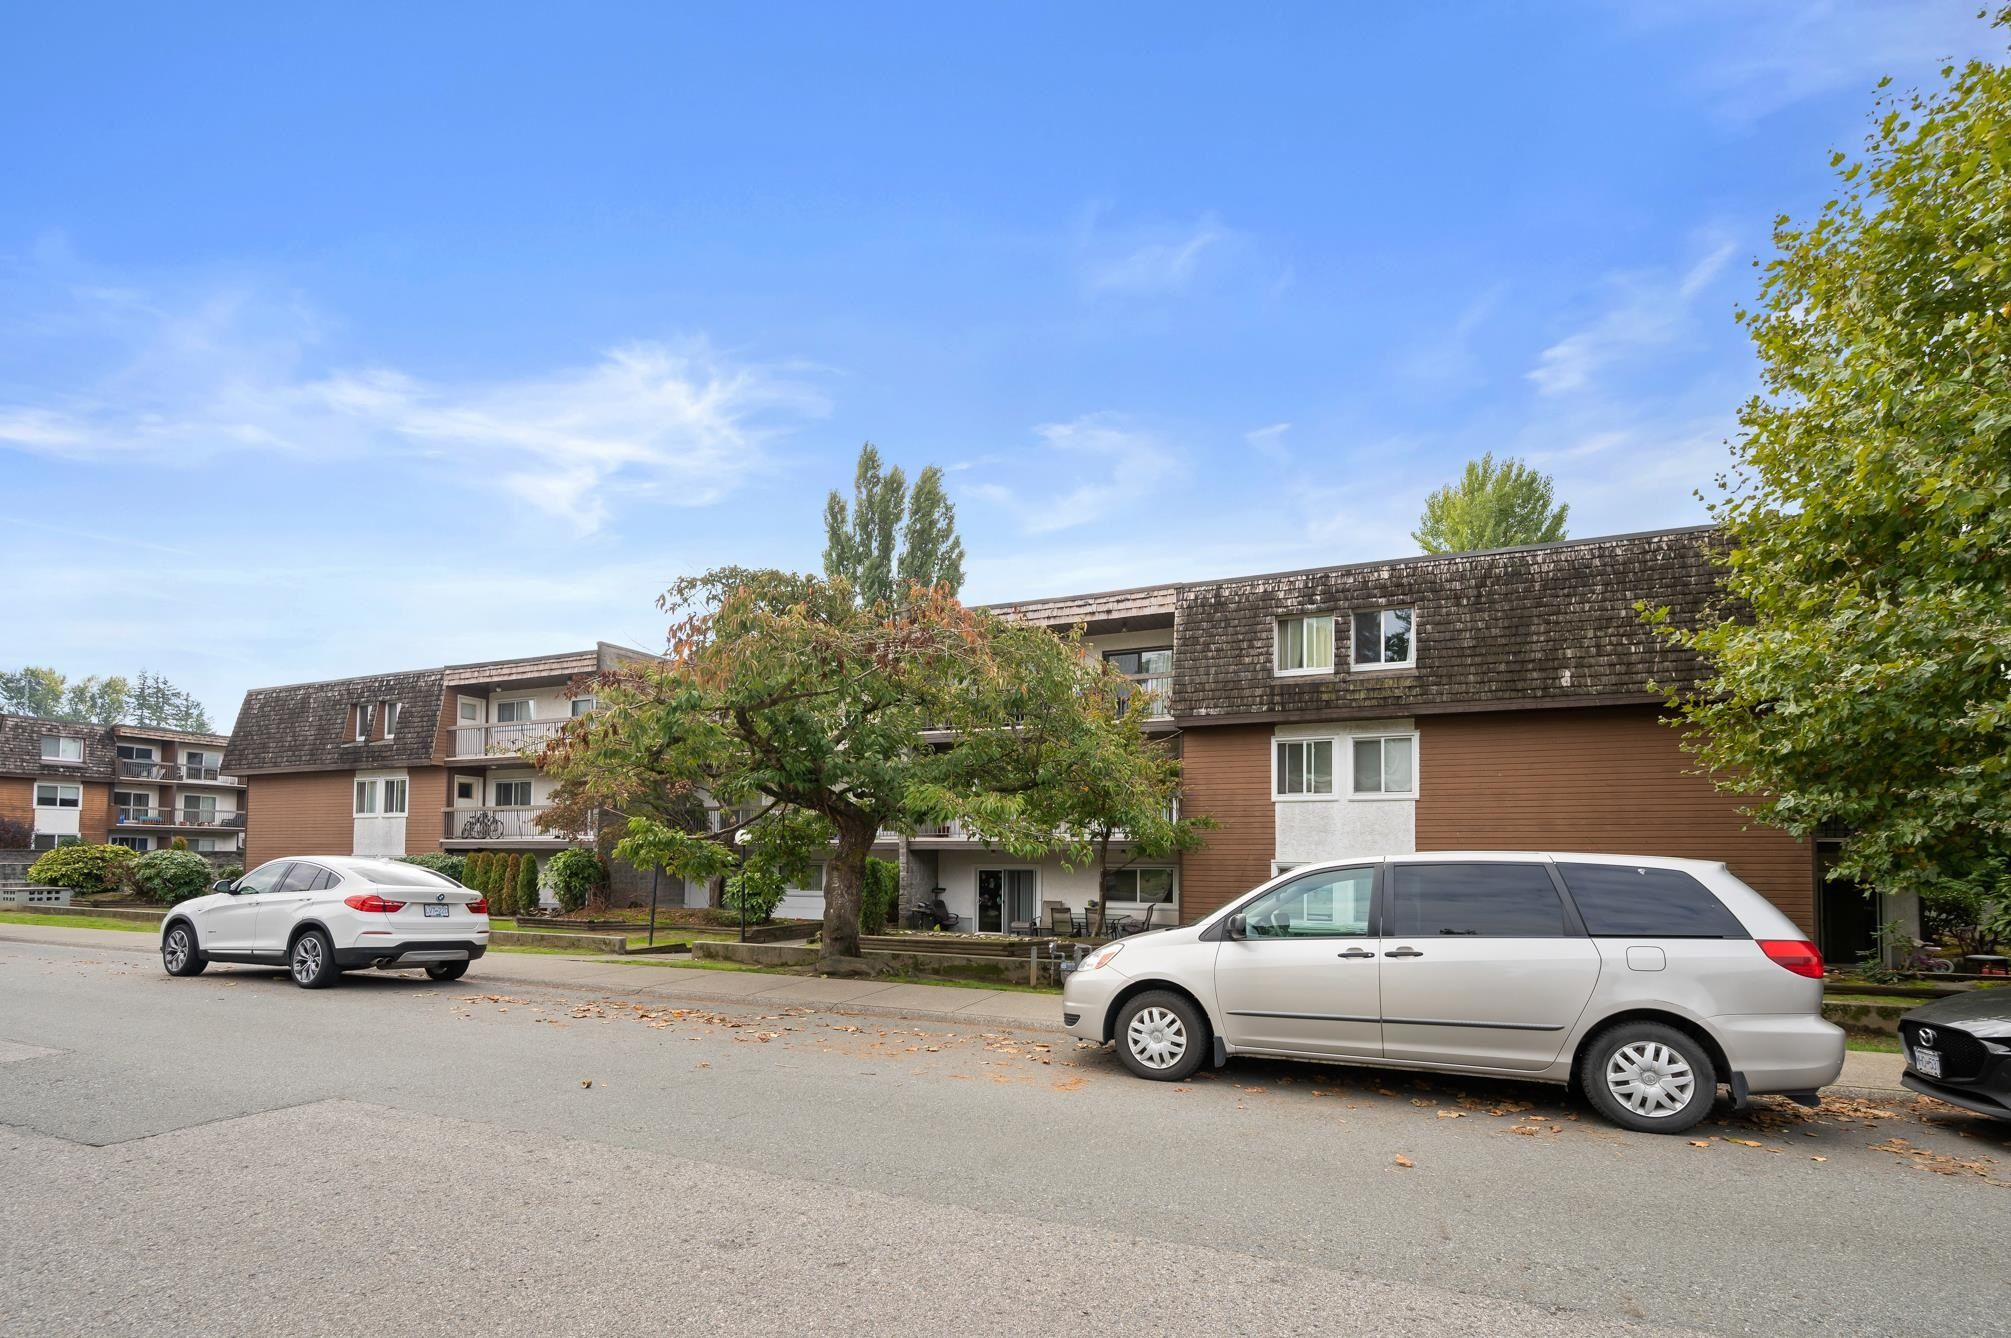 """Main Photo: 313 33850 FERN Street in Abbotsford: Central Abbotsford Condo for sale in """"Fernwood Manor"""" : MLS®# R2624681"""